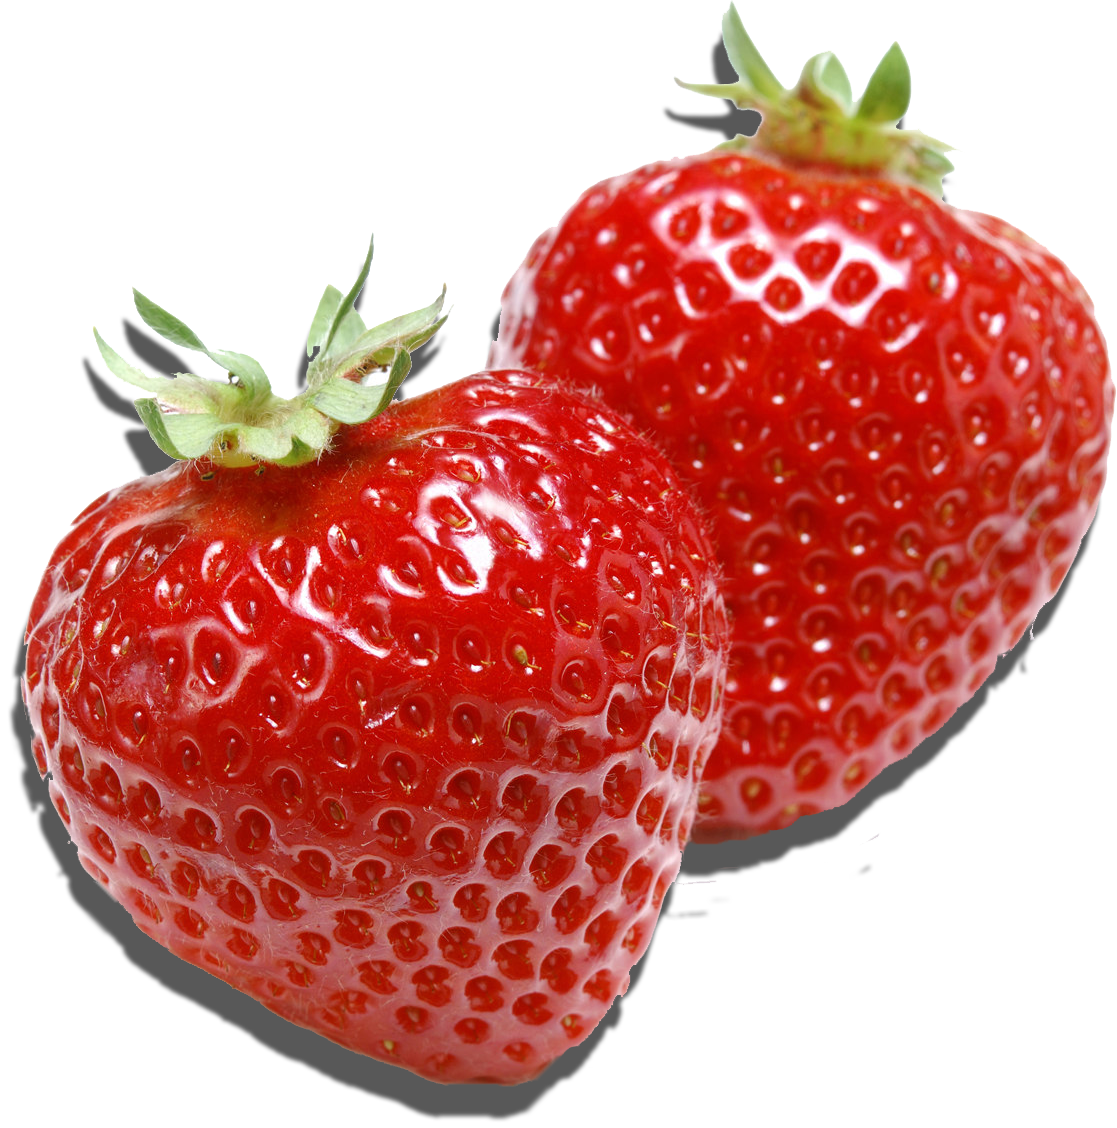 Strawberry PNG - 5179